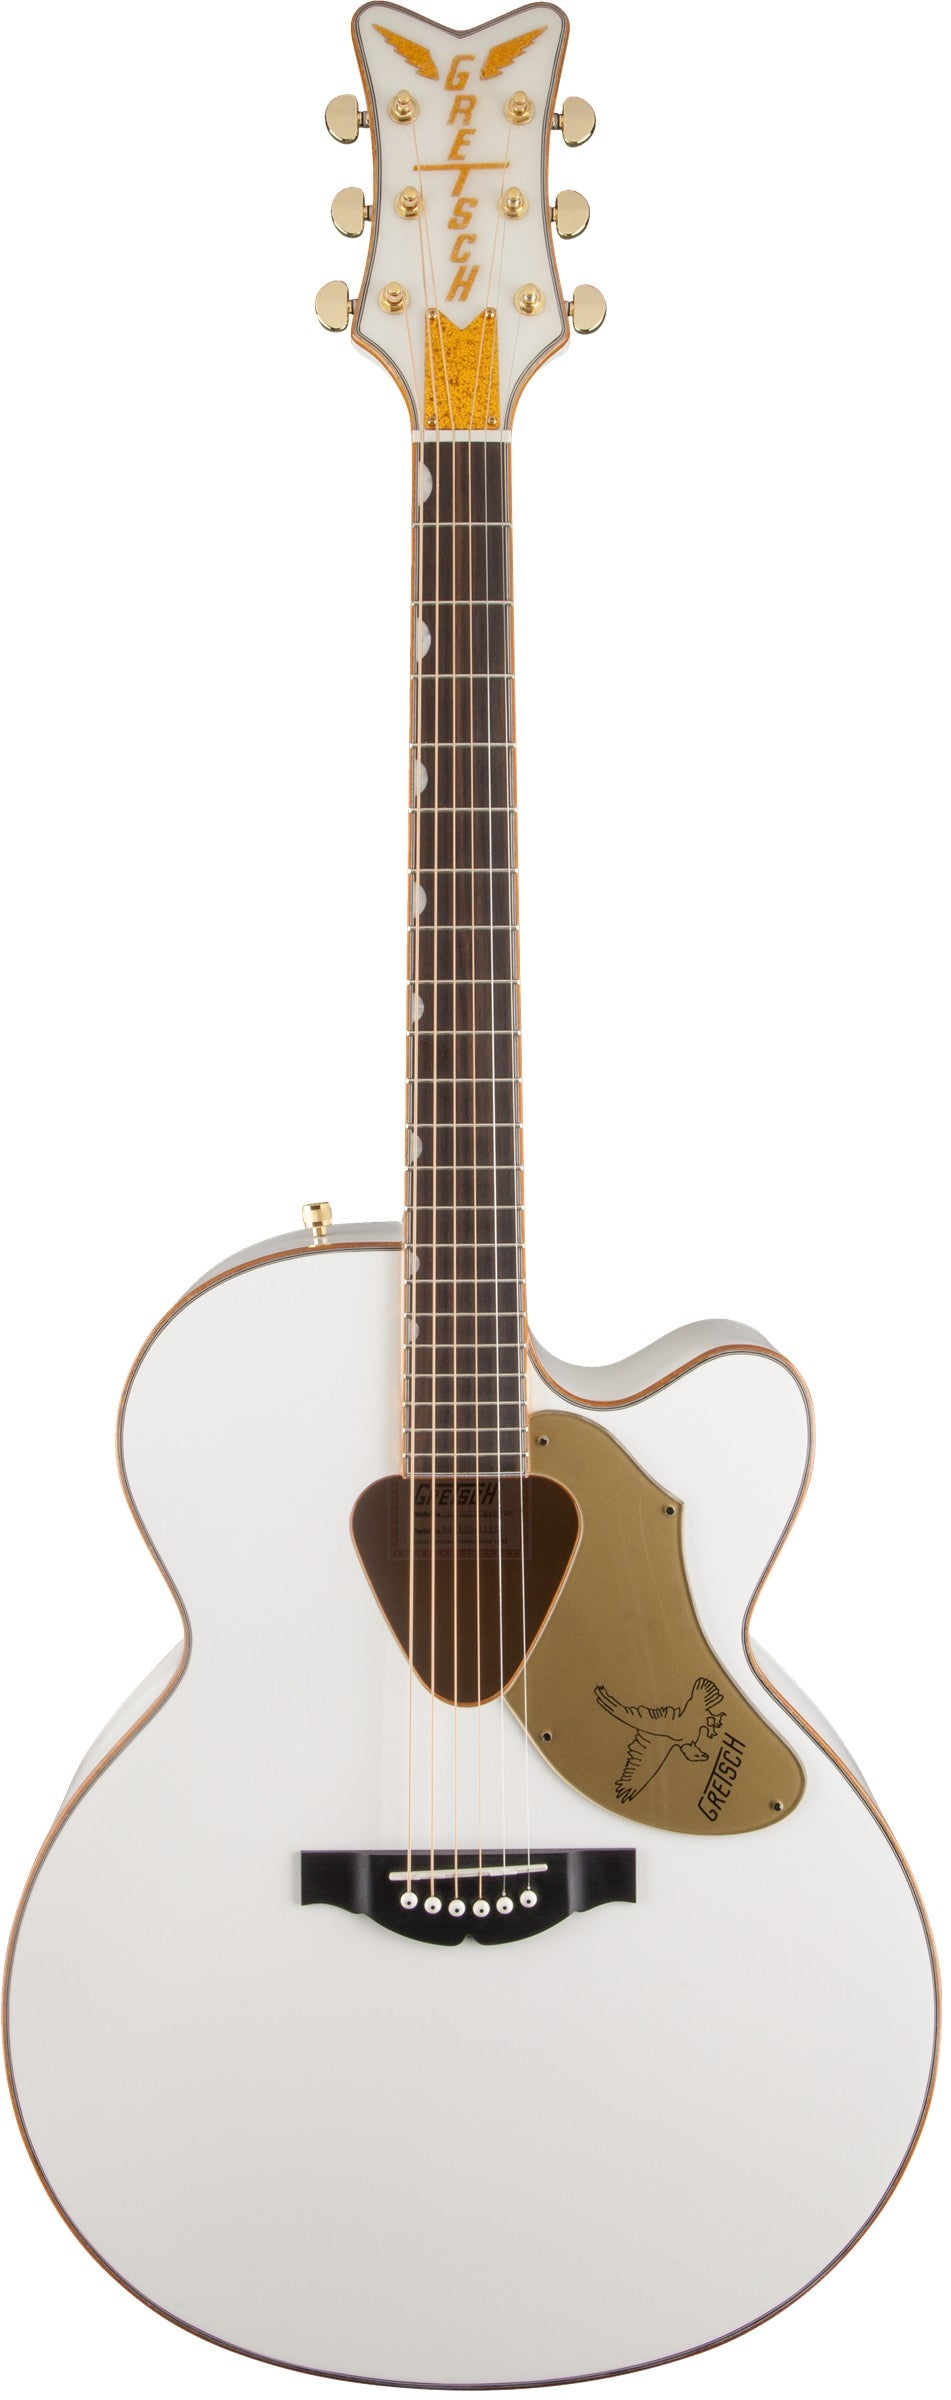 Gretsch Rancher Falcon Jumbo Acoustic Electric Guitar